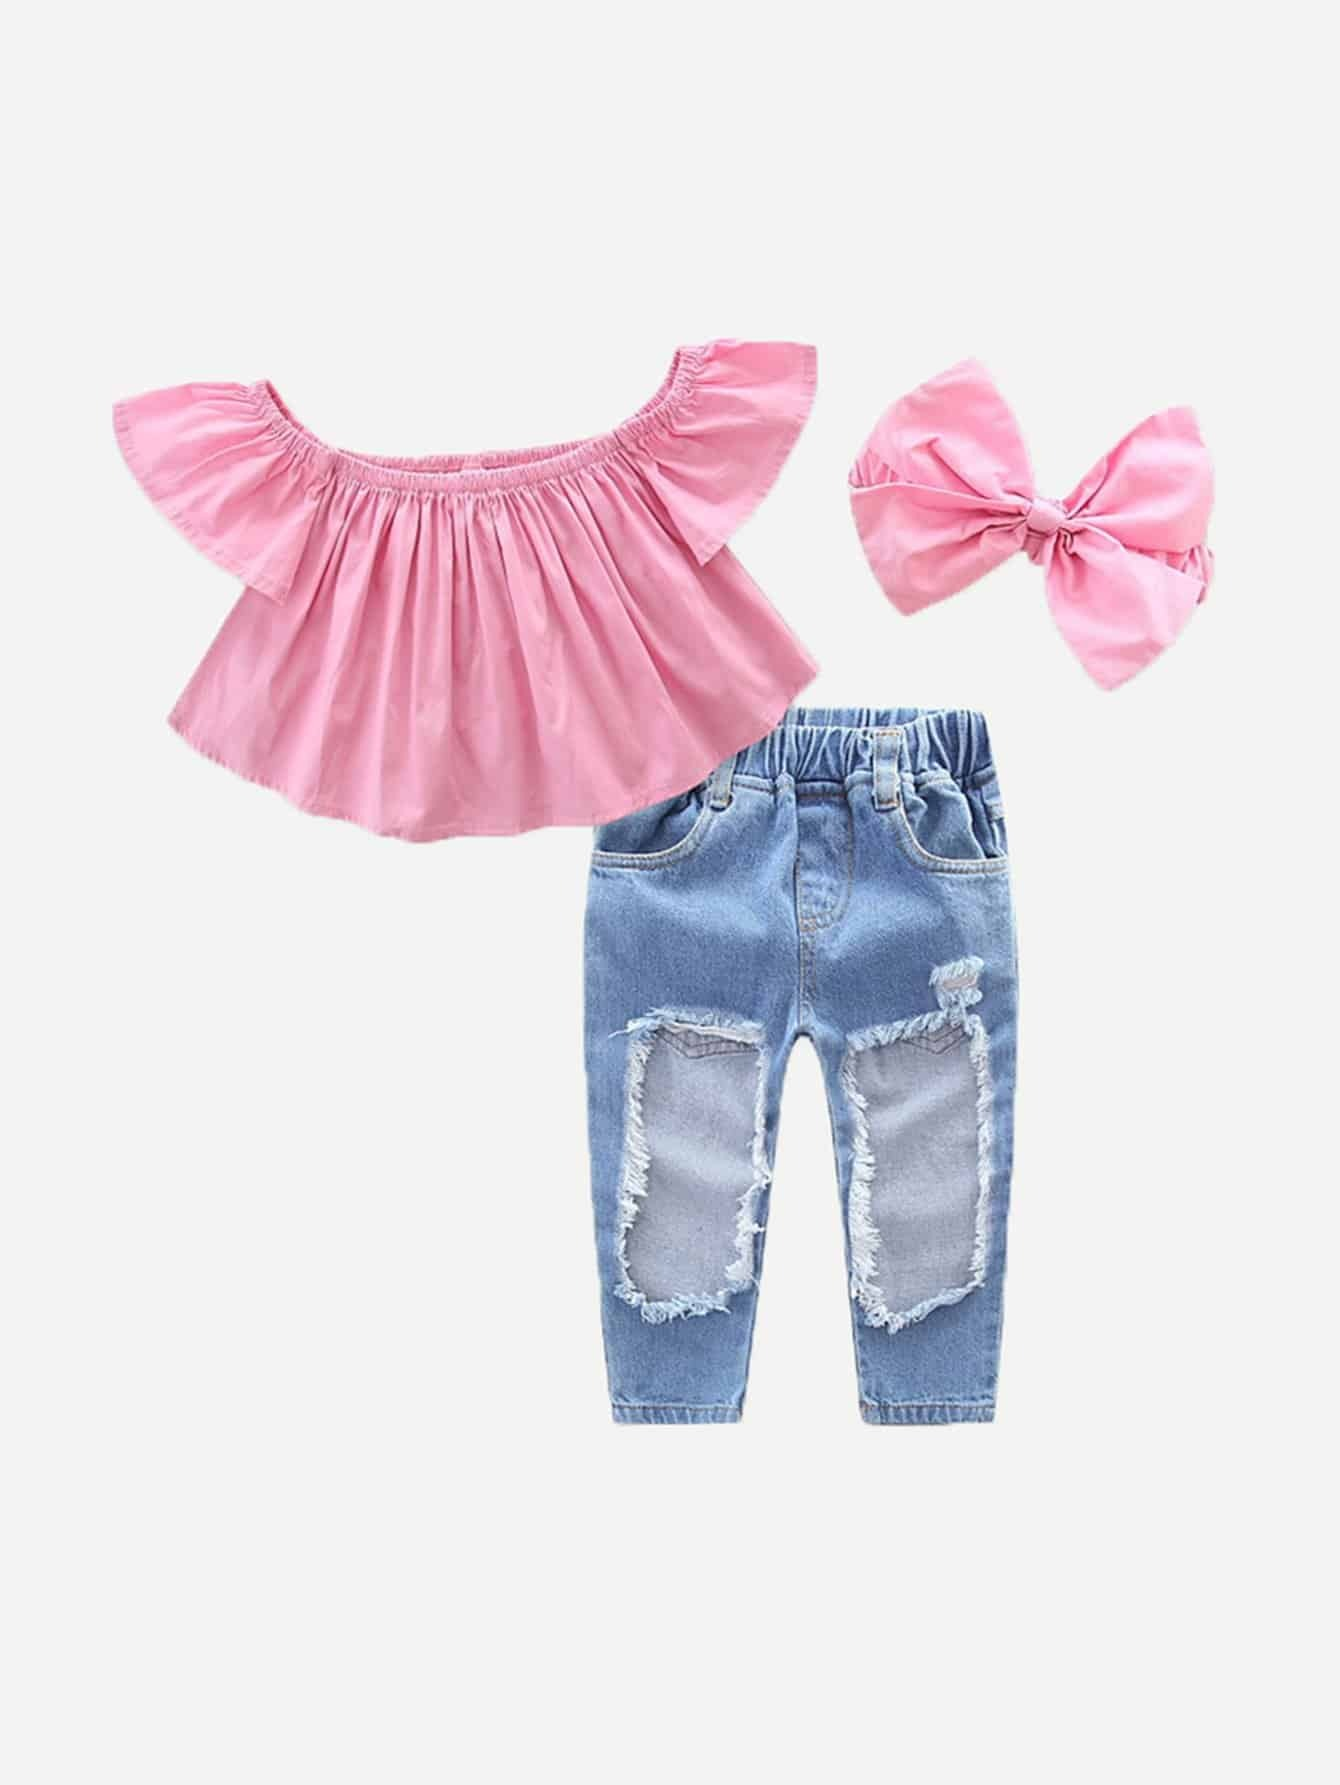 Kids Tube Top With Destroyed Denim Pants ибп uniel u iups 1500uc